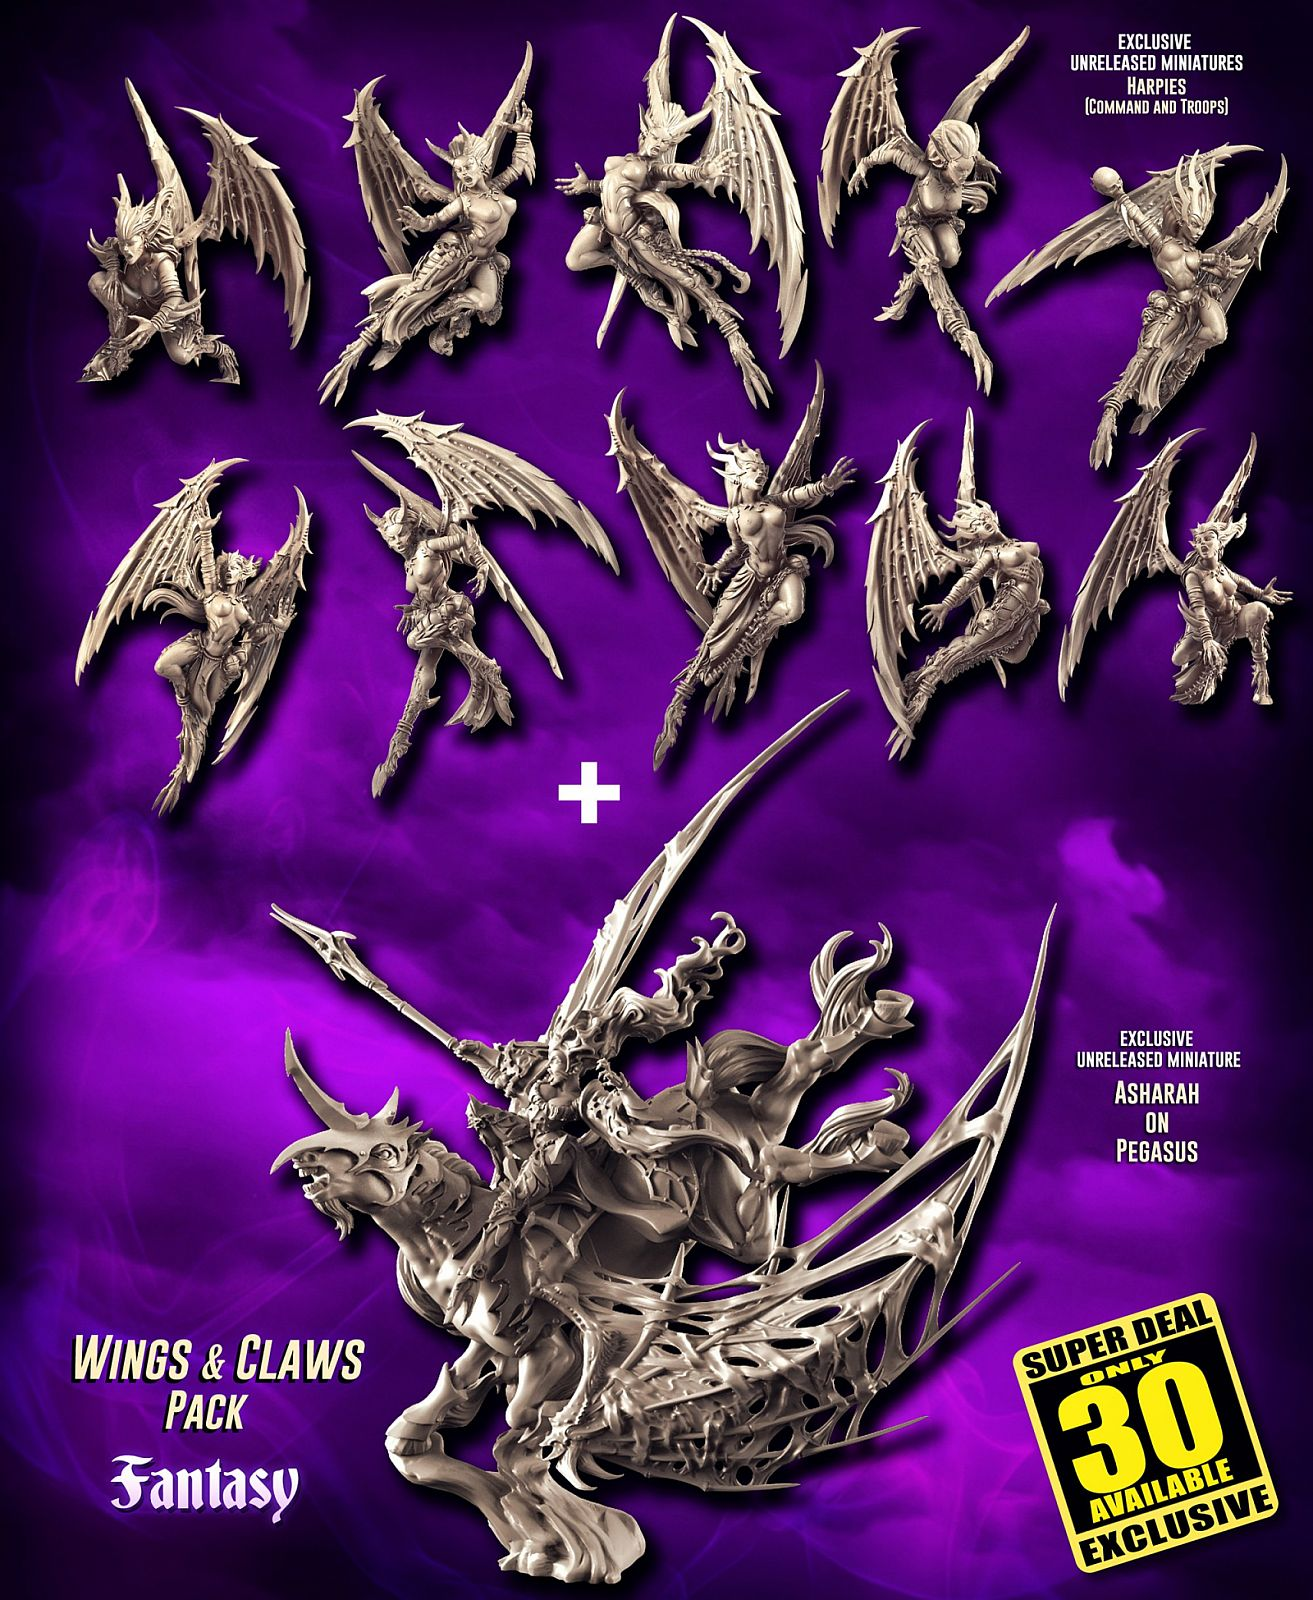 EXCLUSIVE Wings & Claws Pack (DE - FANTASY)